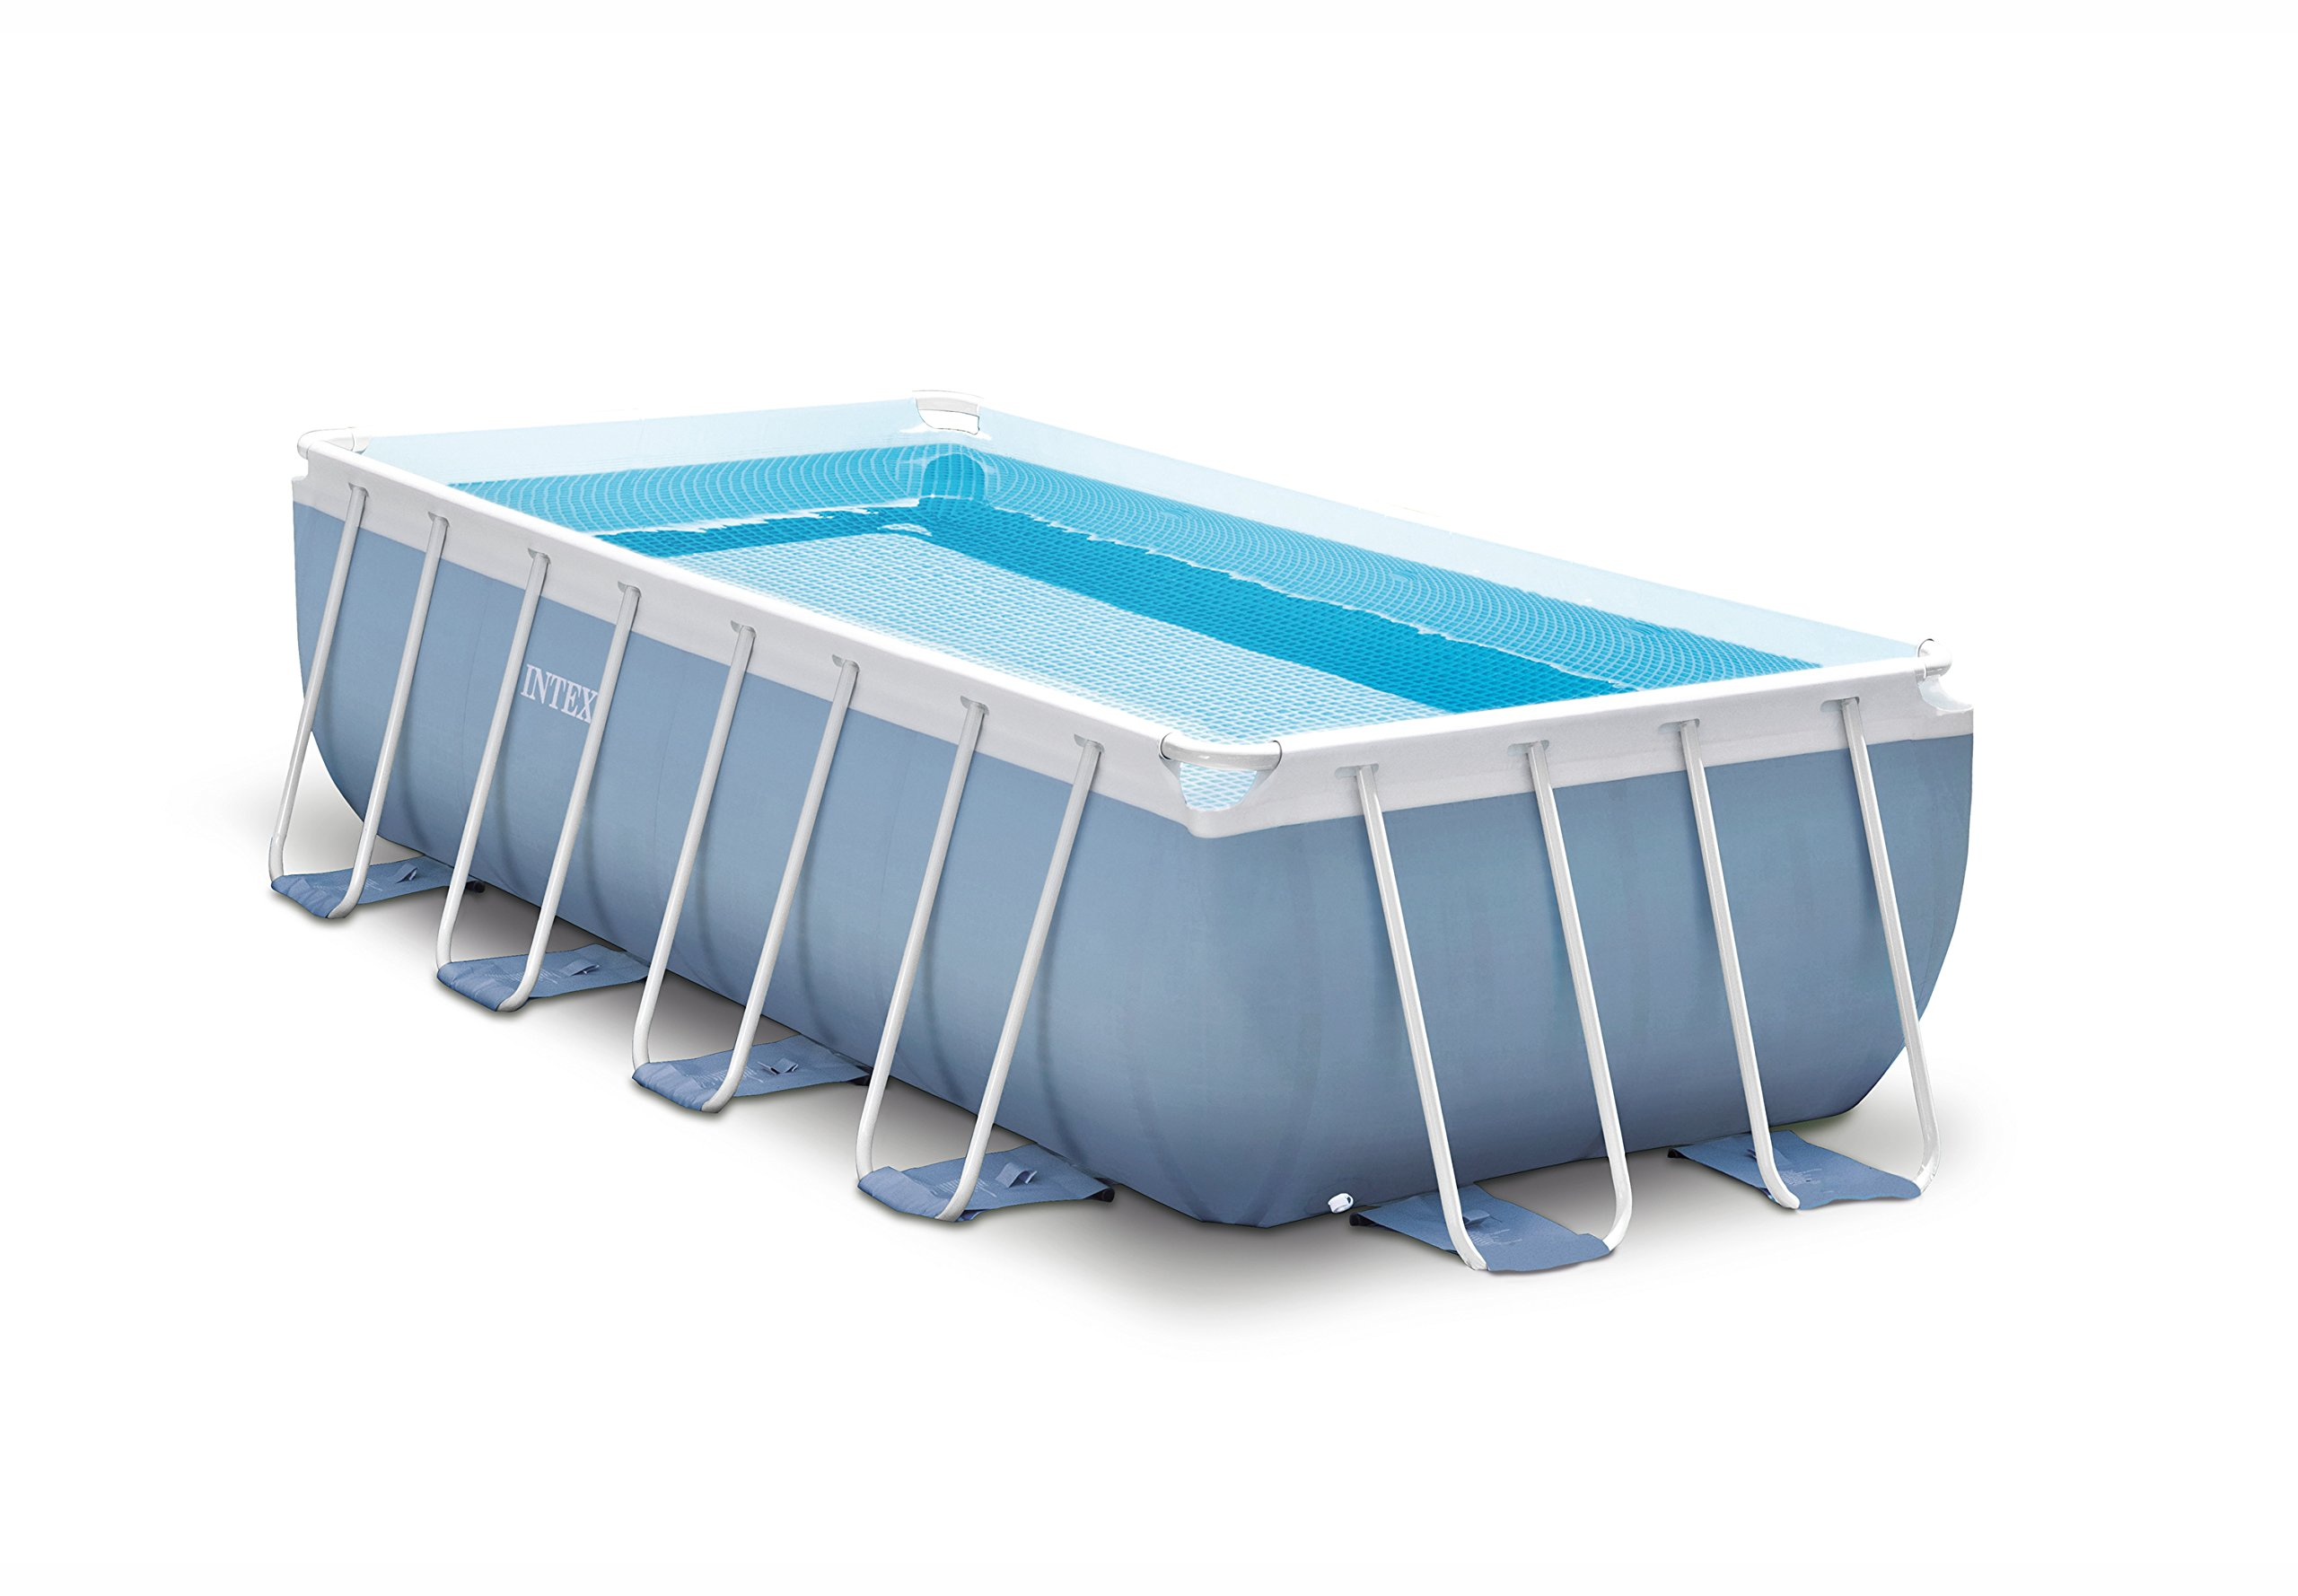 Intex 16ft X 8ft X 42in Rectangular Prism Frame Pool Set with Filter Pump, Ladder, Ground Cloth & Pool Cover